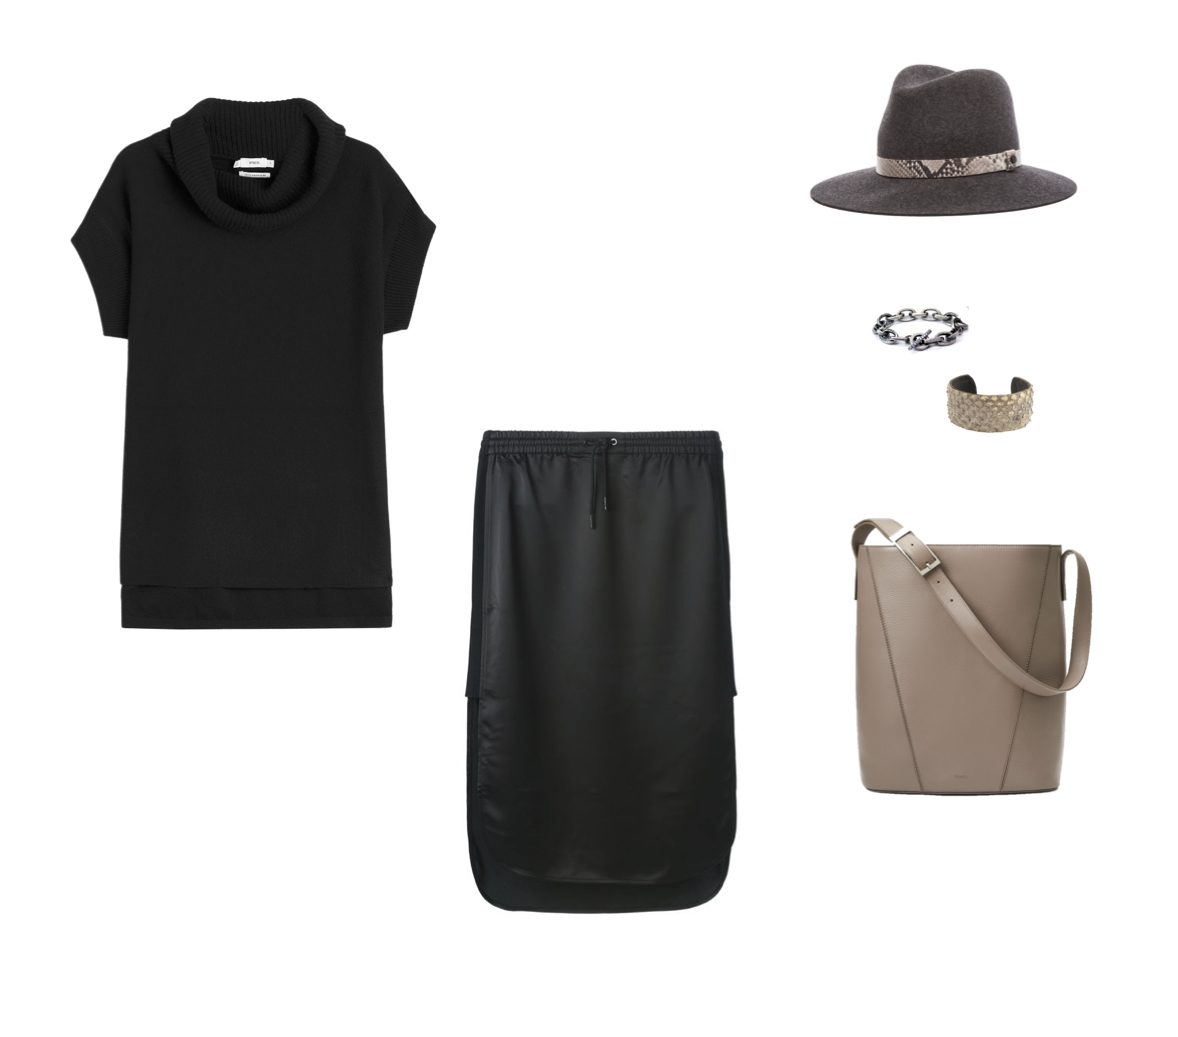 Vince Cashmere Cowl Neck Pull-Over, T by Alexander Wang Satin Skirt, Rag & Bone Floppy Brim Fedora, Rene Escobar Chain Link Bracelet, CLP Metallic Snakeskin Cuff and Vince Signature V Modern Bucket Bag.